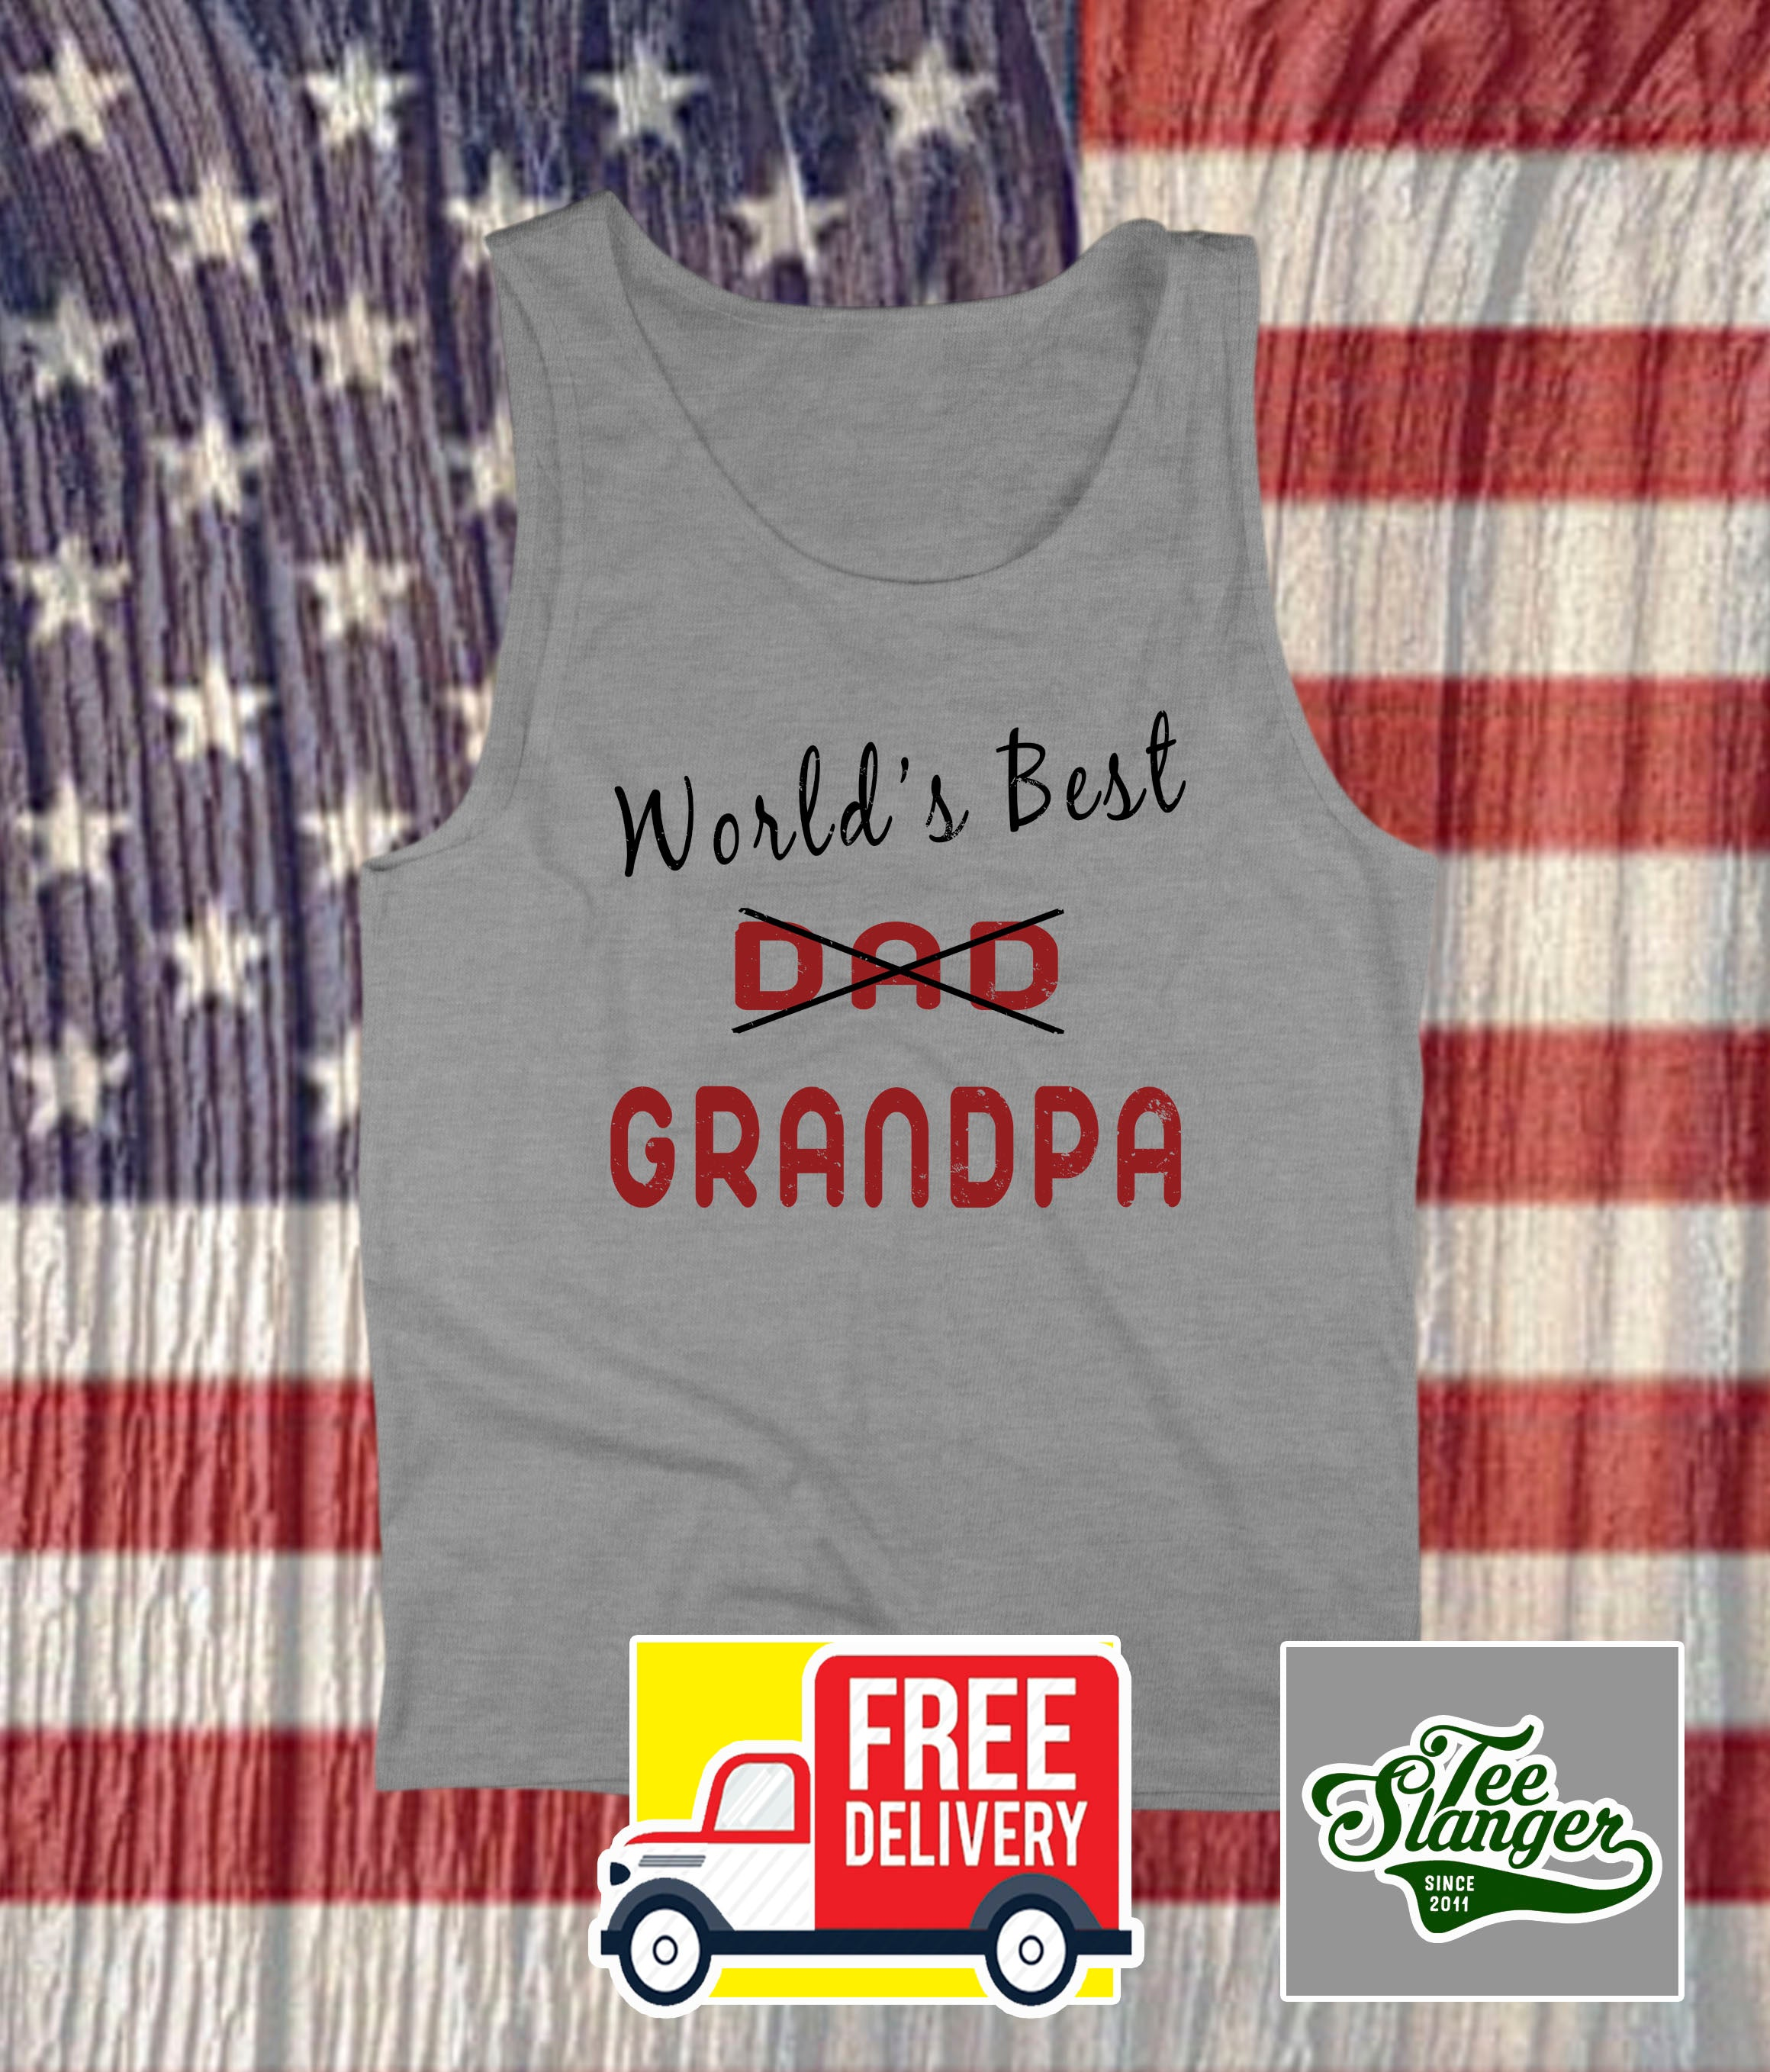 PROMOTED TO GRANDPA TANK TOP